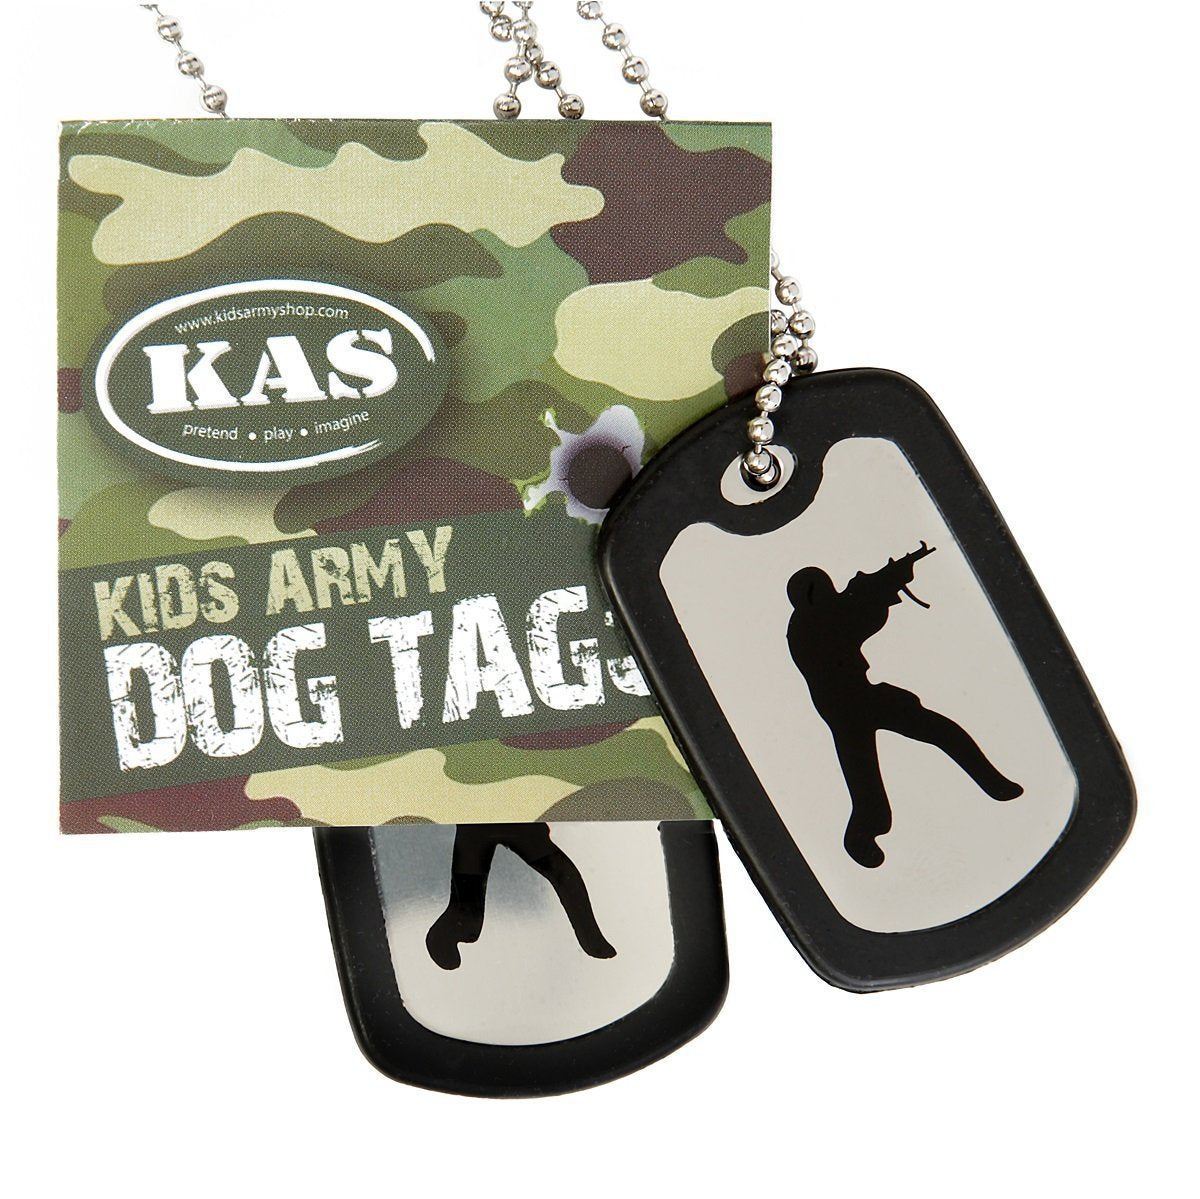 Army Dog Tags - Stainless Steel Military Dog Tags - Including Silencers - Kids/Adults - Bear Essentials Clothing Company